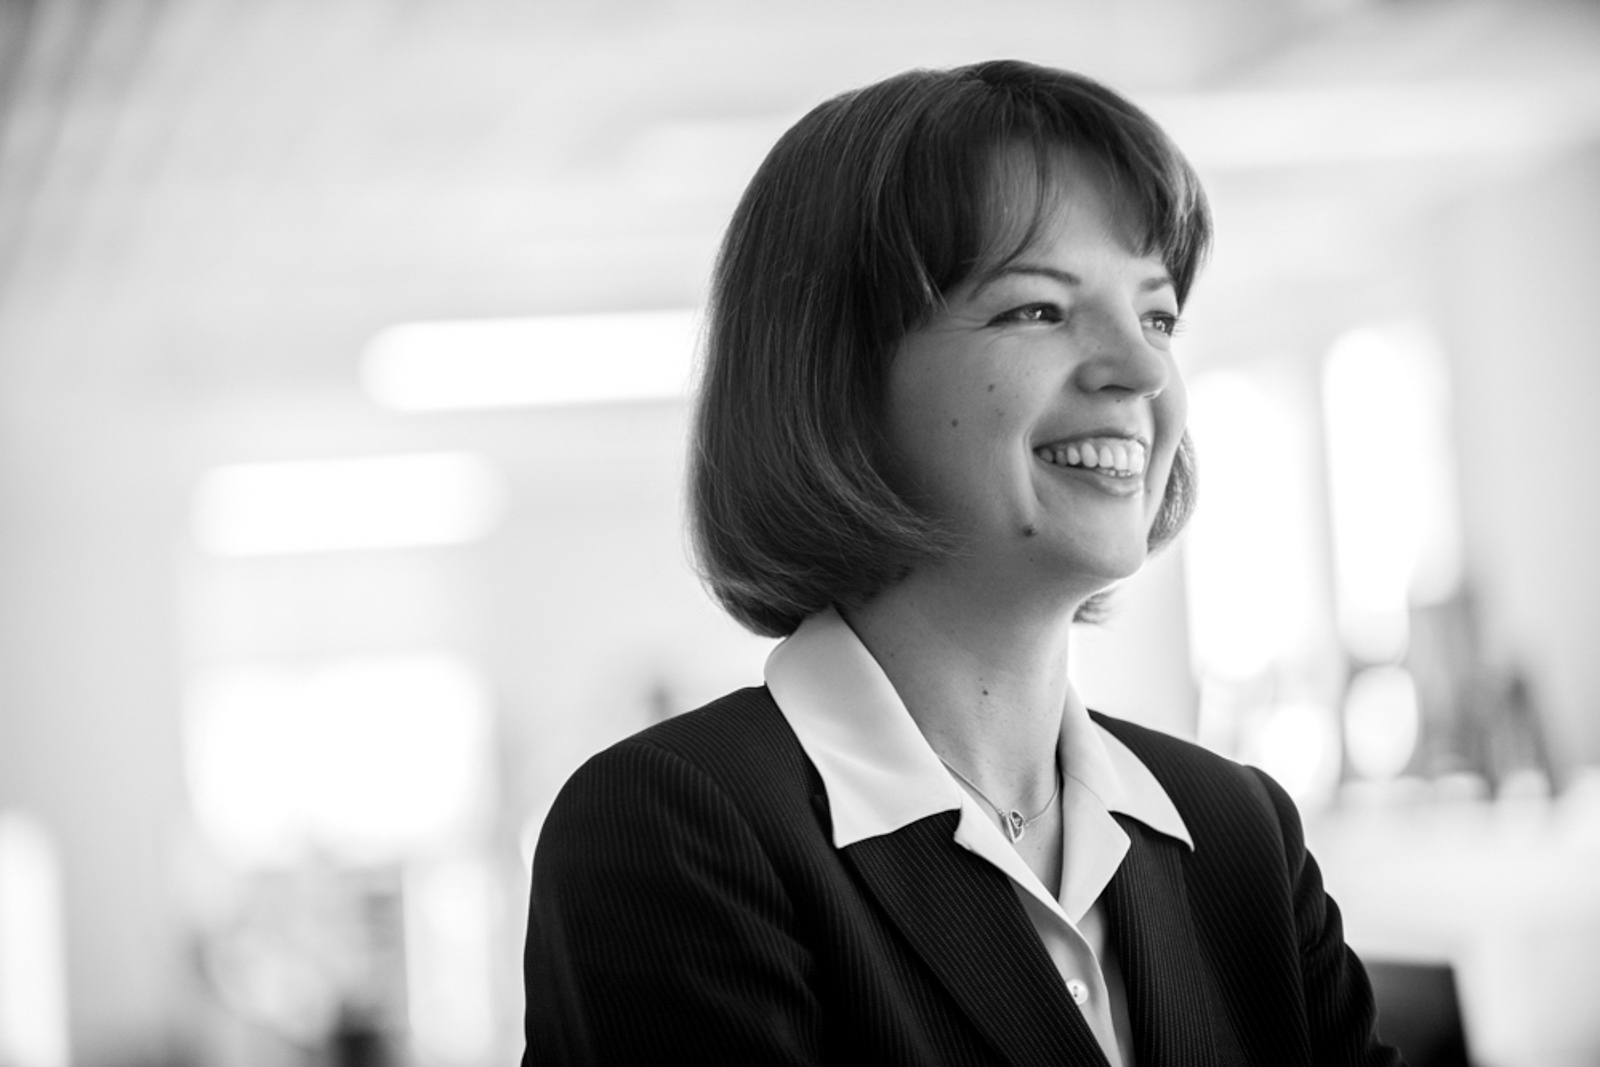 Black and White portrait of business woman, smiling confidently